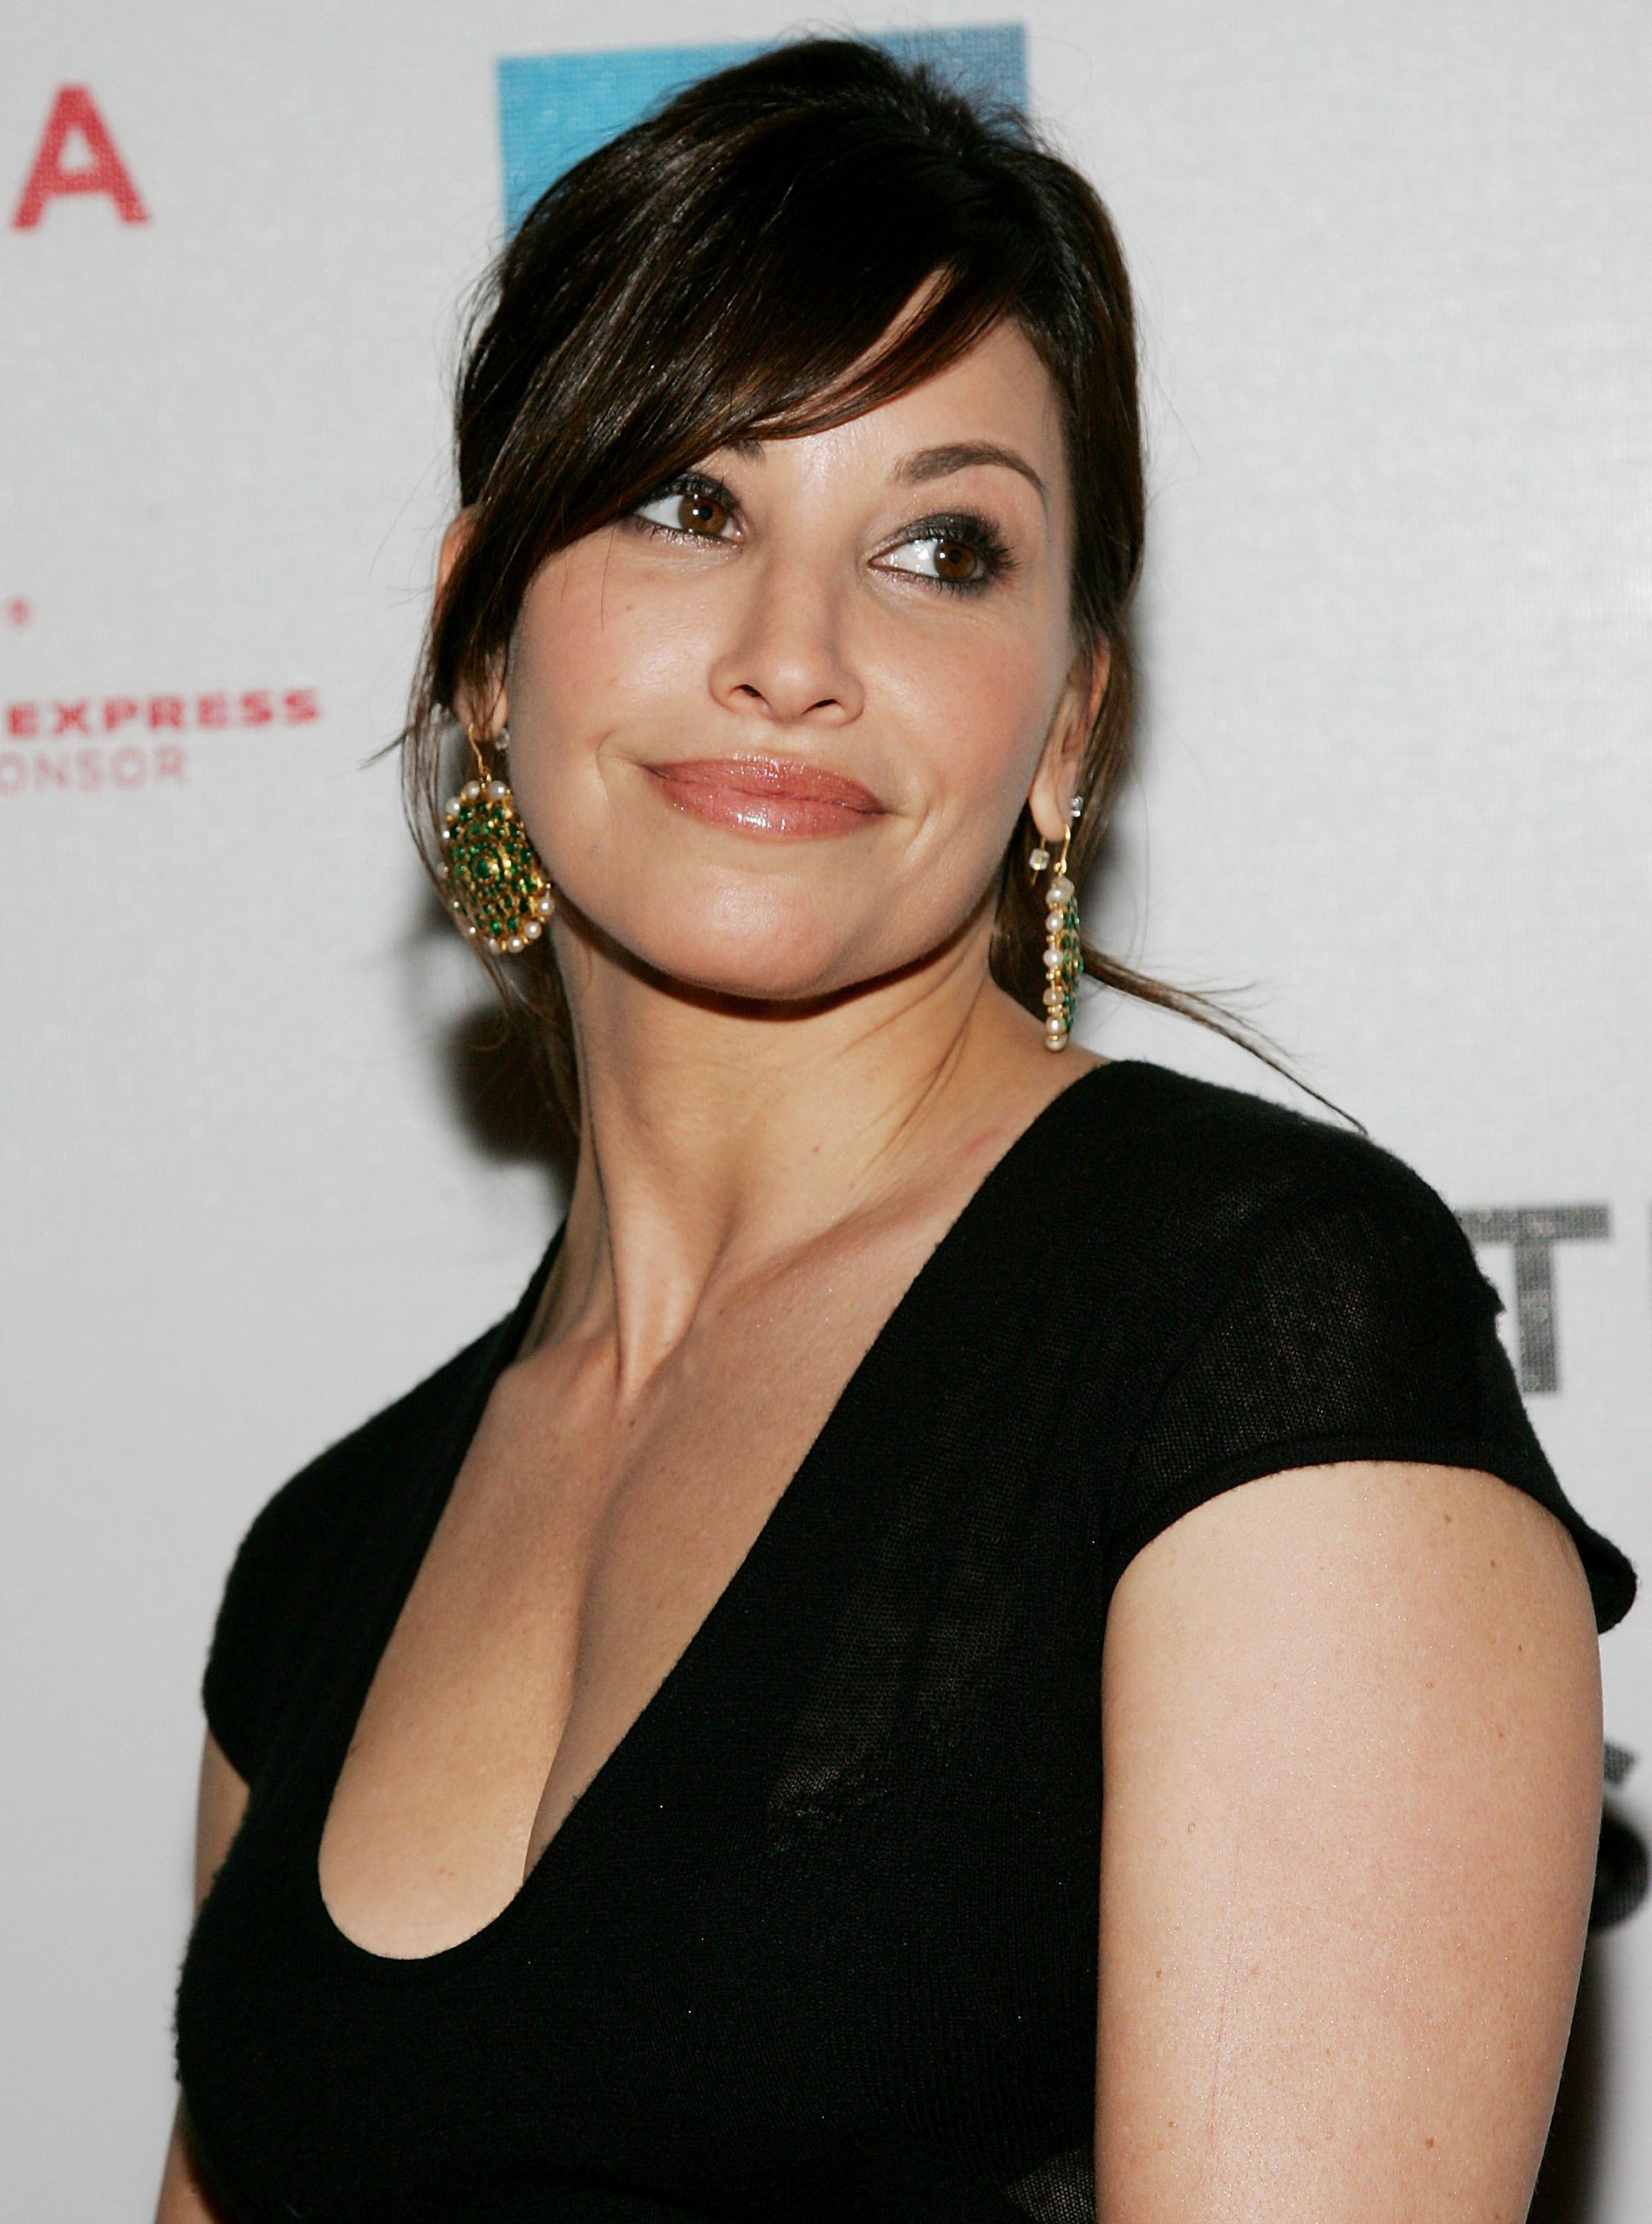 Gina Gershon Plastic srugery before and after photos ...